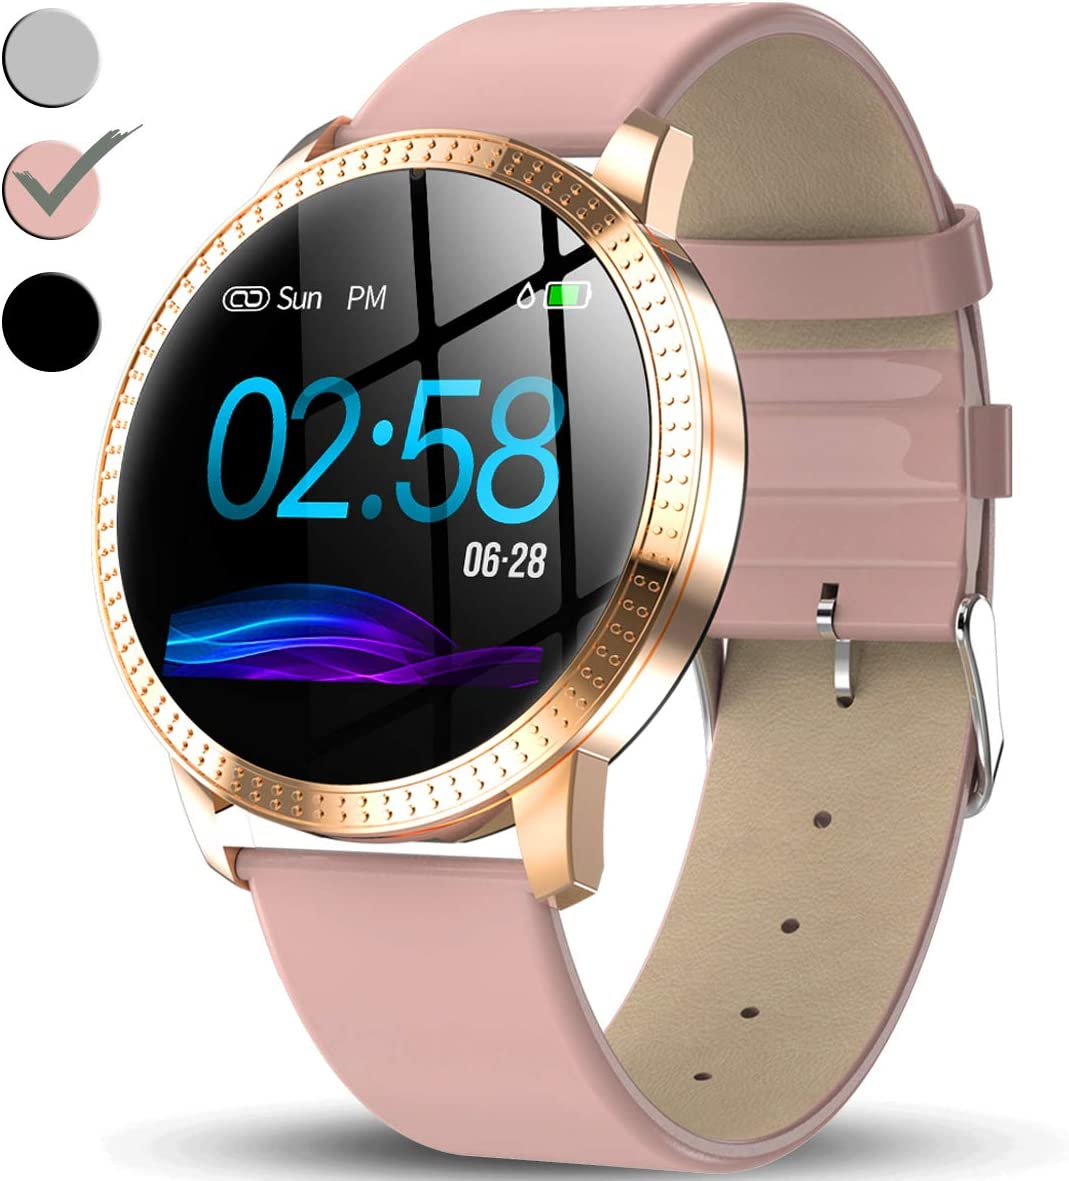 Amazon Com Turnmeon Women Hybrid Smart Watch Fitness Tracker Ip67 Waterproof Smartwatch For Android With Heart Rate Monitor Blood Pressure Monitor Sleep Female Menstrual Record Pedometer Calorie Counter